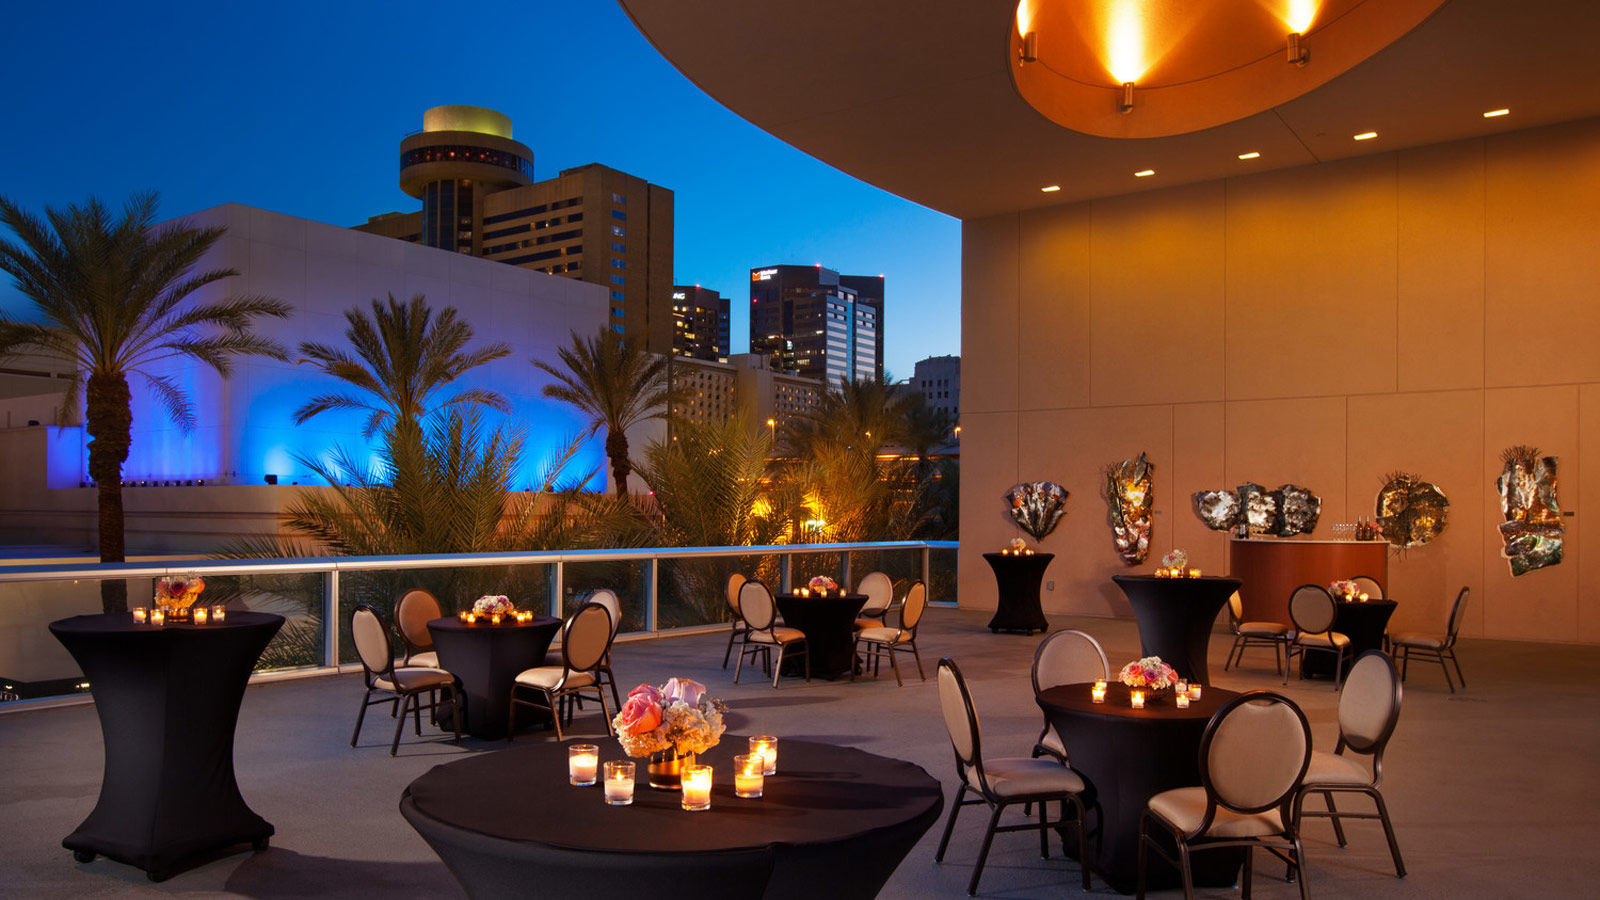 Phoenix Wedding Venues - Second floor terrace